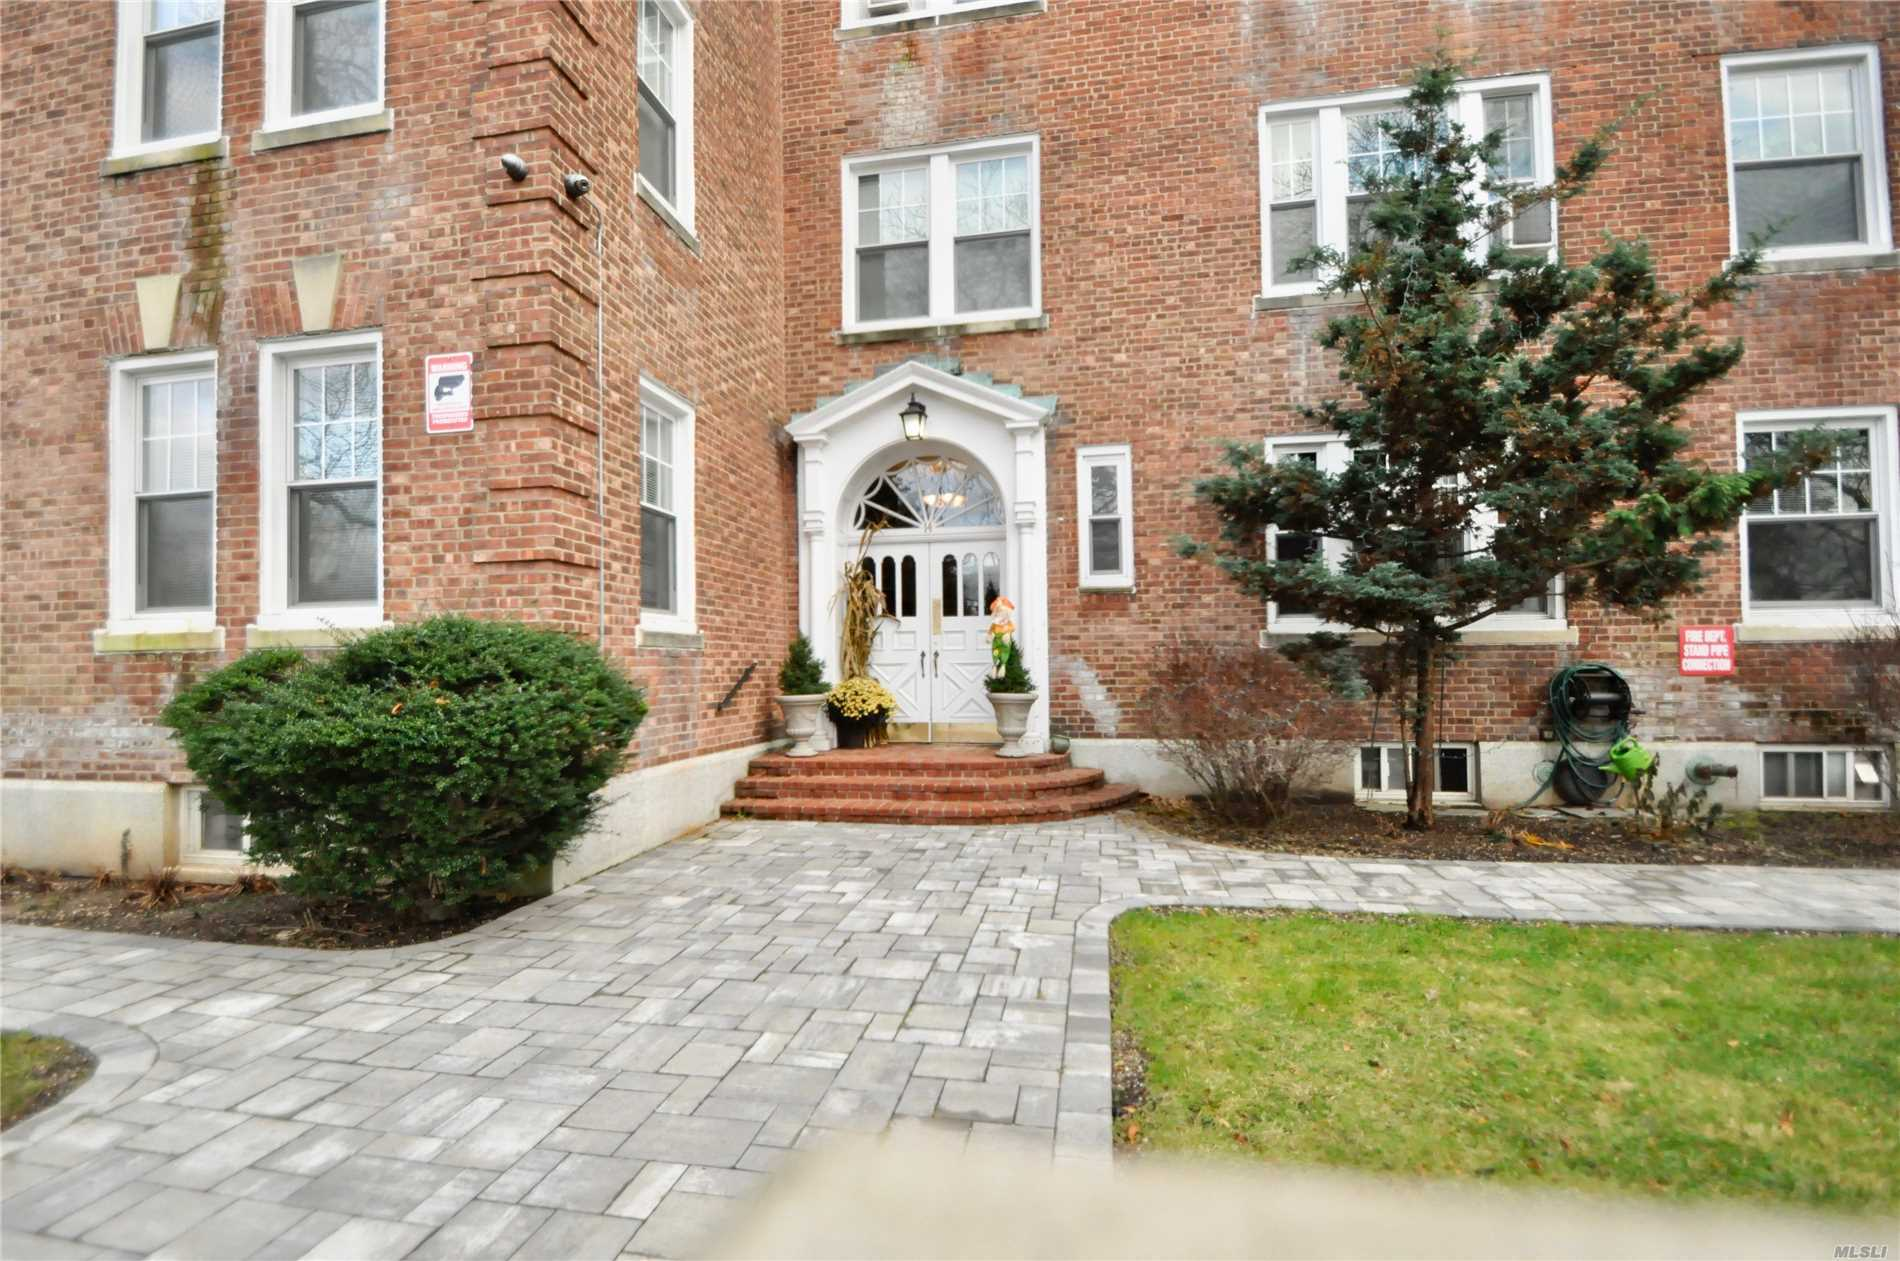 Spacious 1 Bedroom, 1 Bathroom Cooperative Apartment, Features Hardwood Floors Throughout. This 3rd Floor Apartment Comes With Abundance Of Sunshine. Entrance Foyer With Closet, 9Ft. Ceilings.Close To Shopping Malls, Restaurants & Transportation.